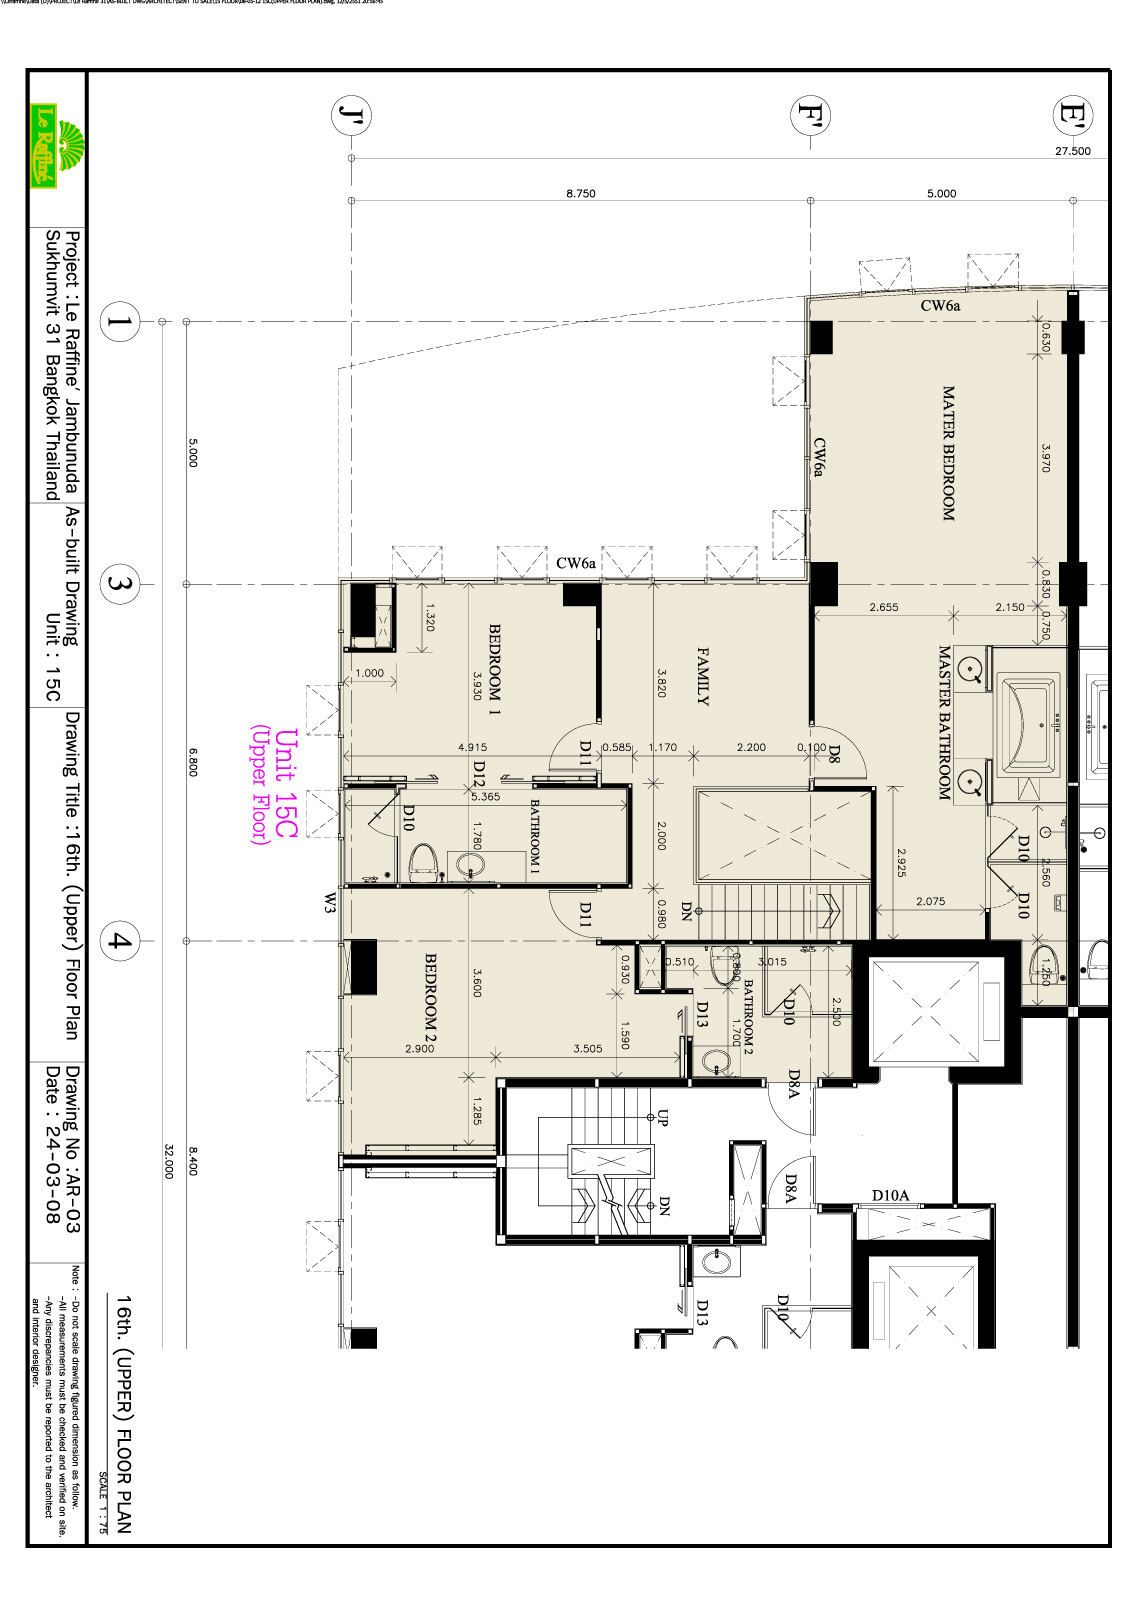 Floor Plan 2